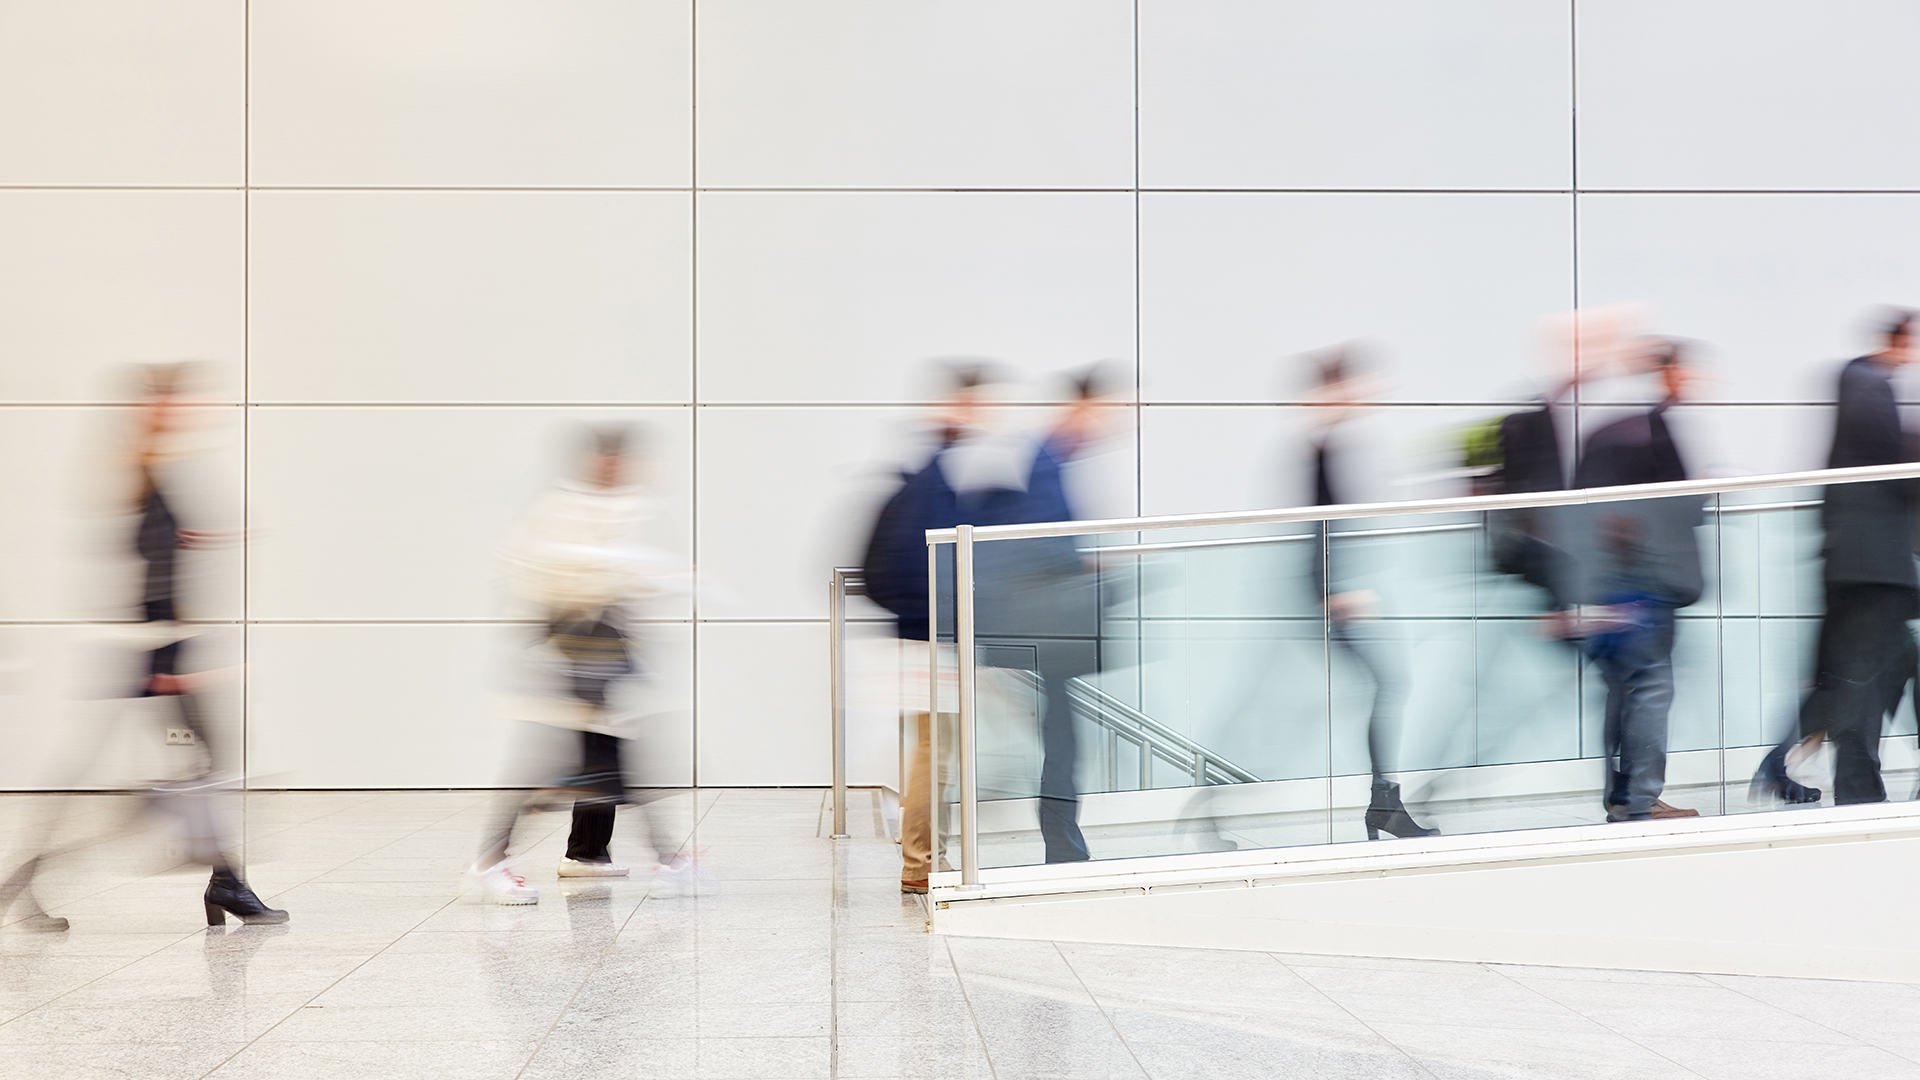 Many anonymous business people are walking through a bright corridor in the modern office